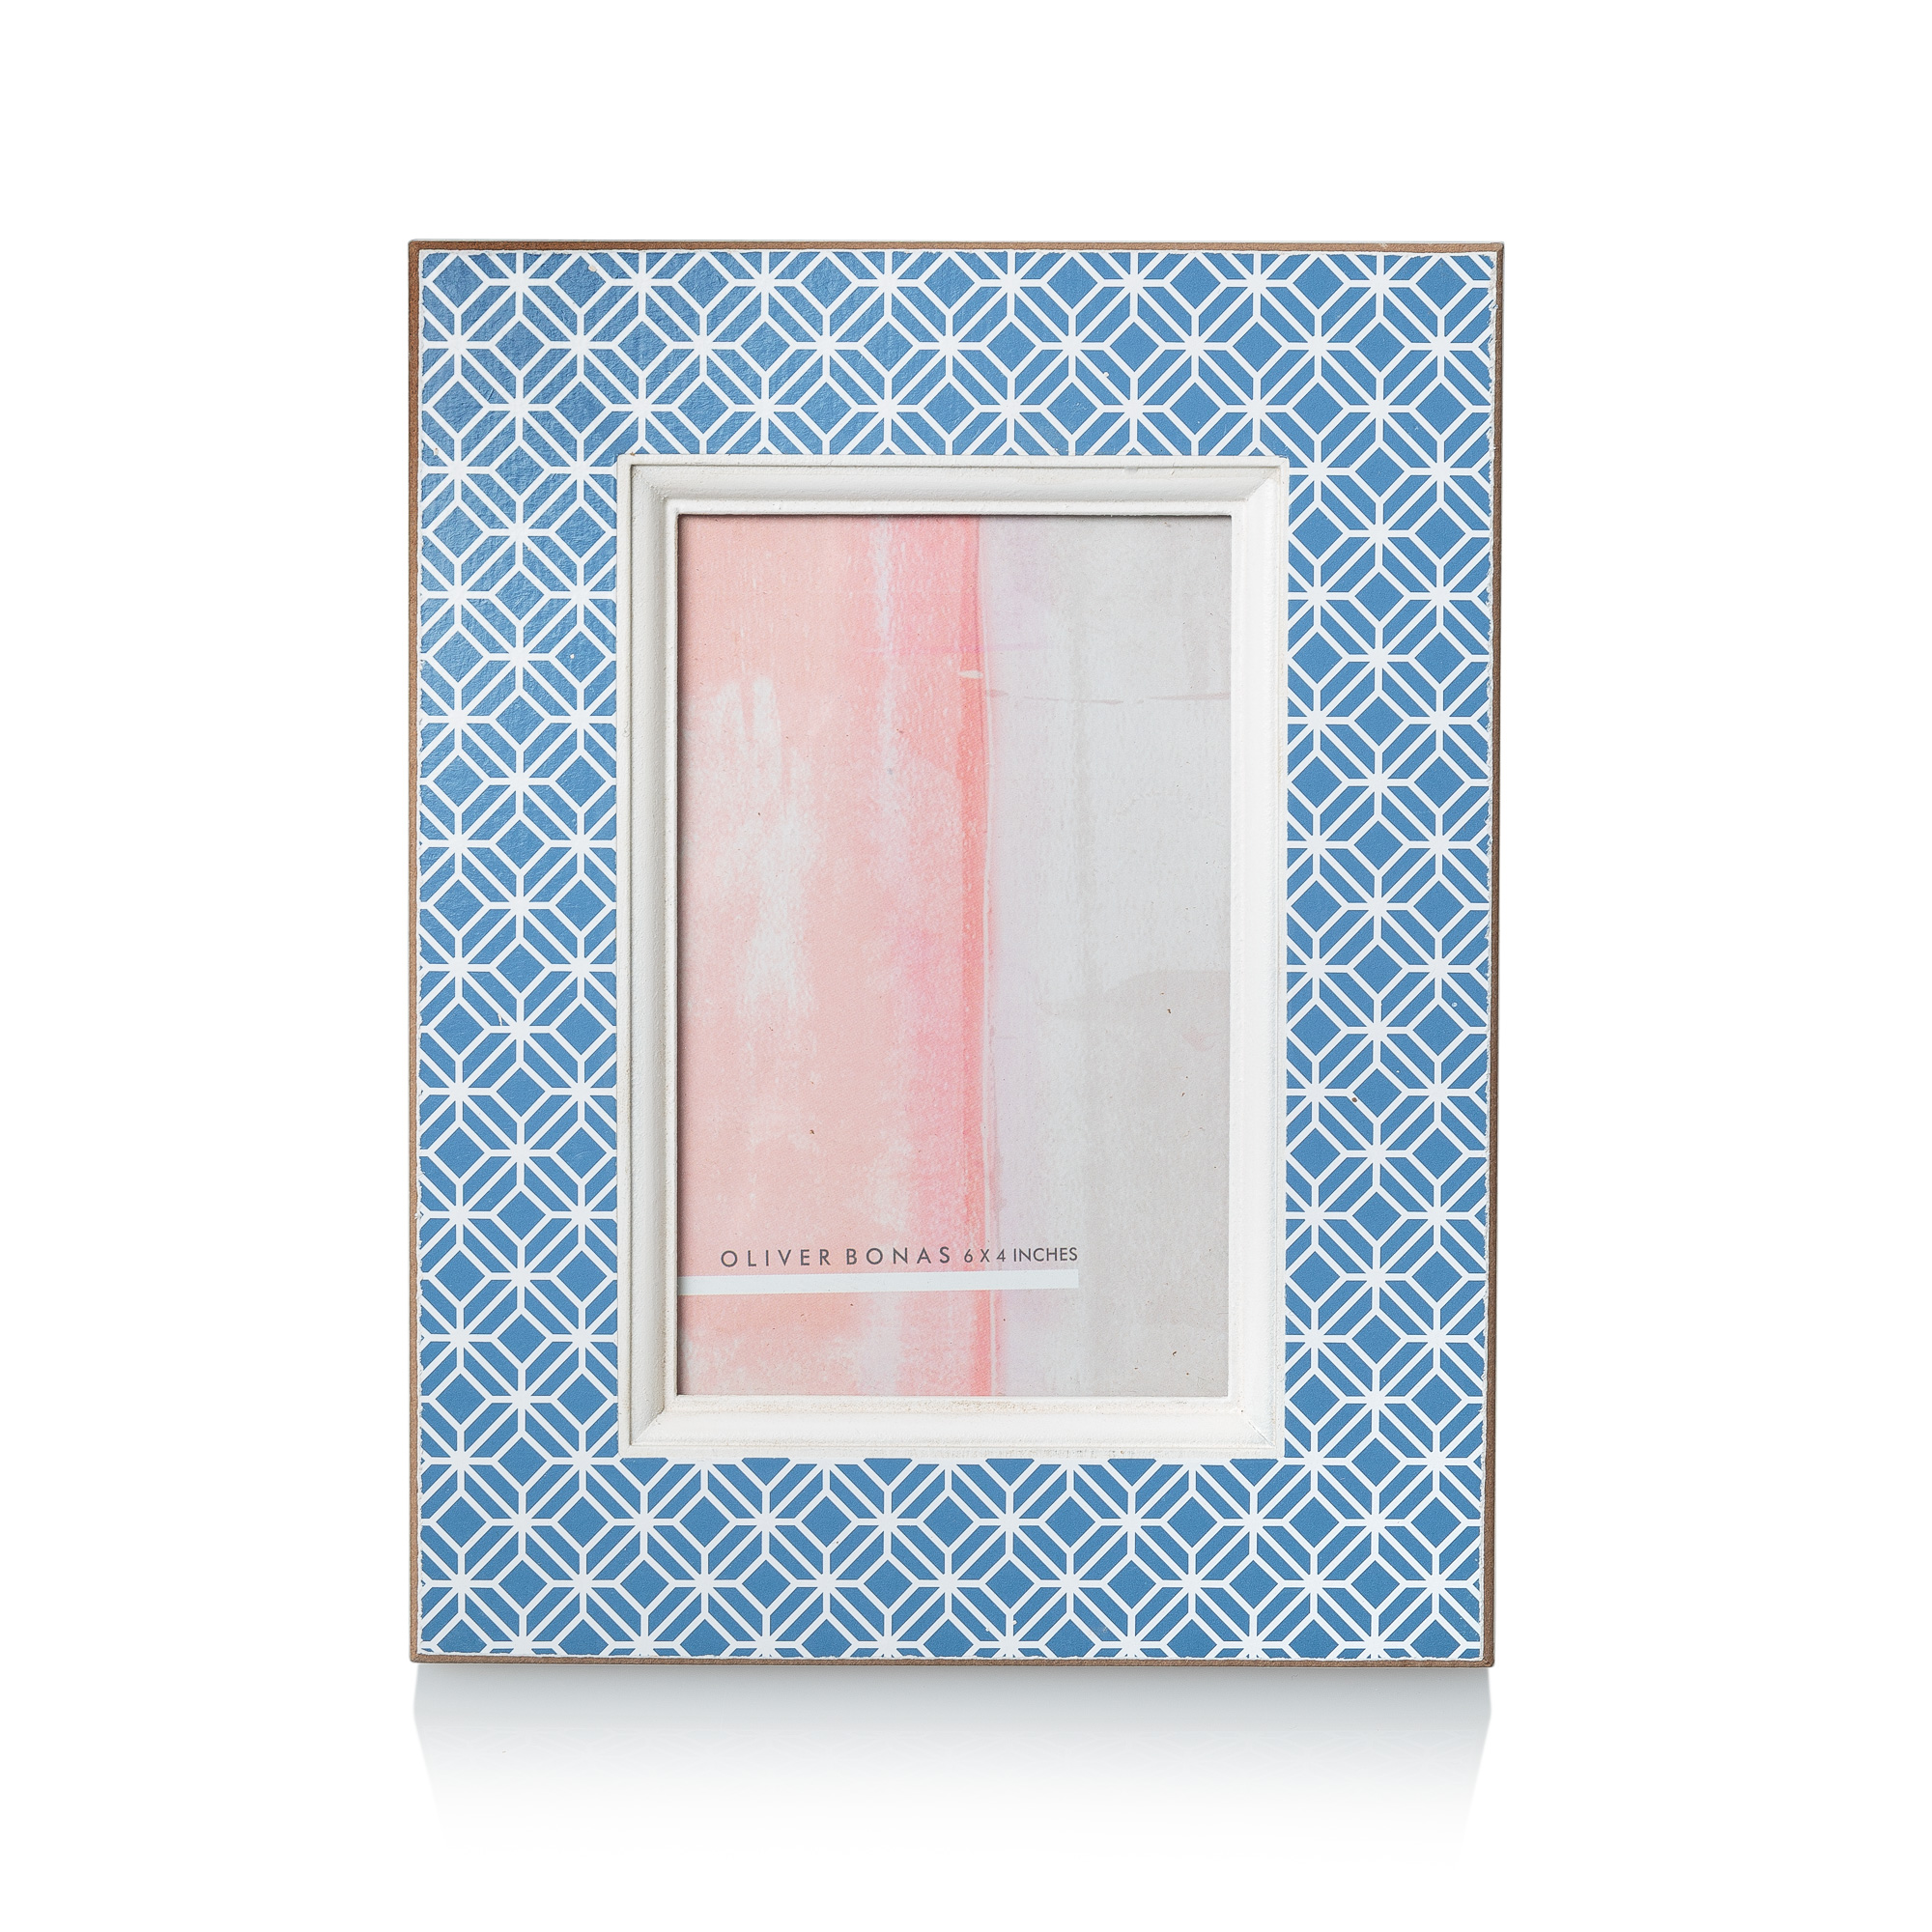 6x4 photo paper cheapest The holiday & christmas paper frames are the perfect choice during this special season we carry a nice selection of holiday picture folders and easels with popular designs these christmas photo holders are perfect for your holiday needs.